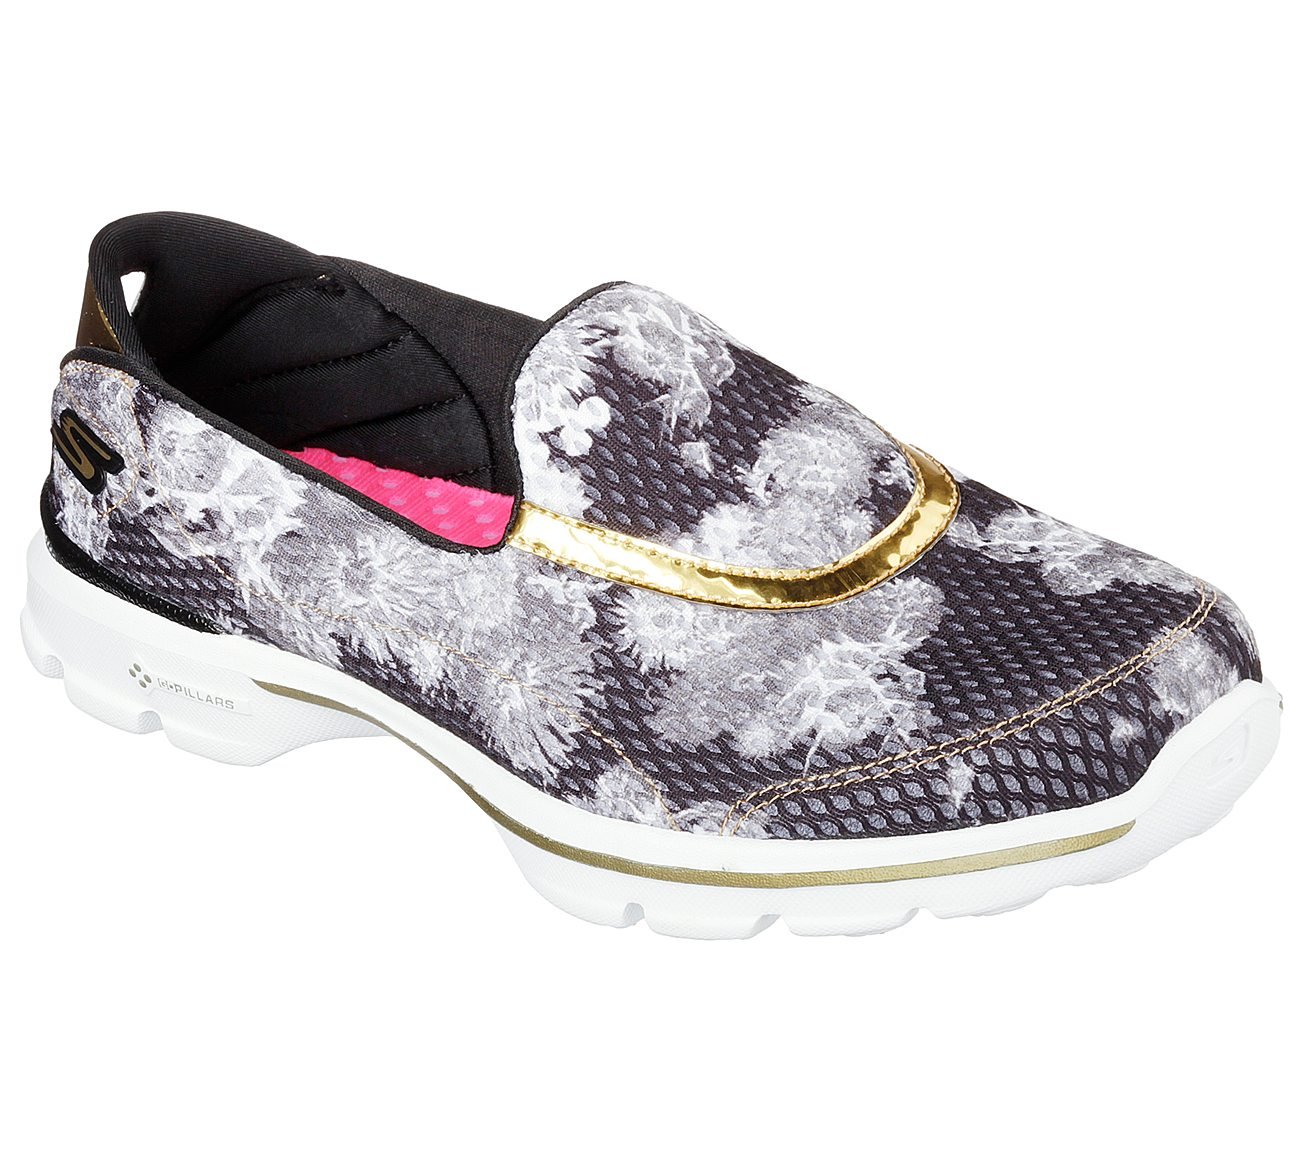 Gold Rush Skechers Performance Shoes